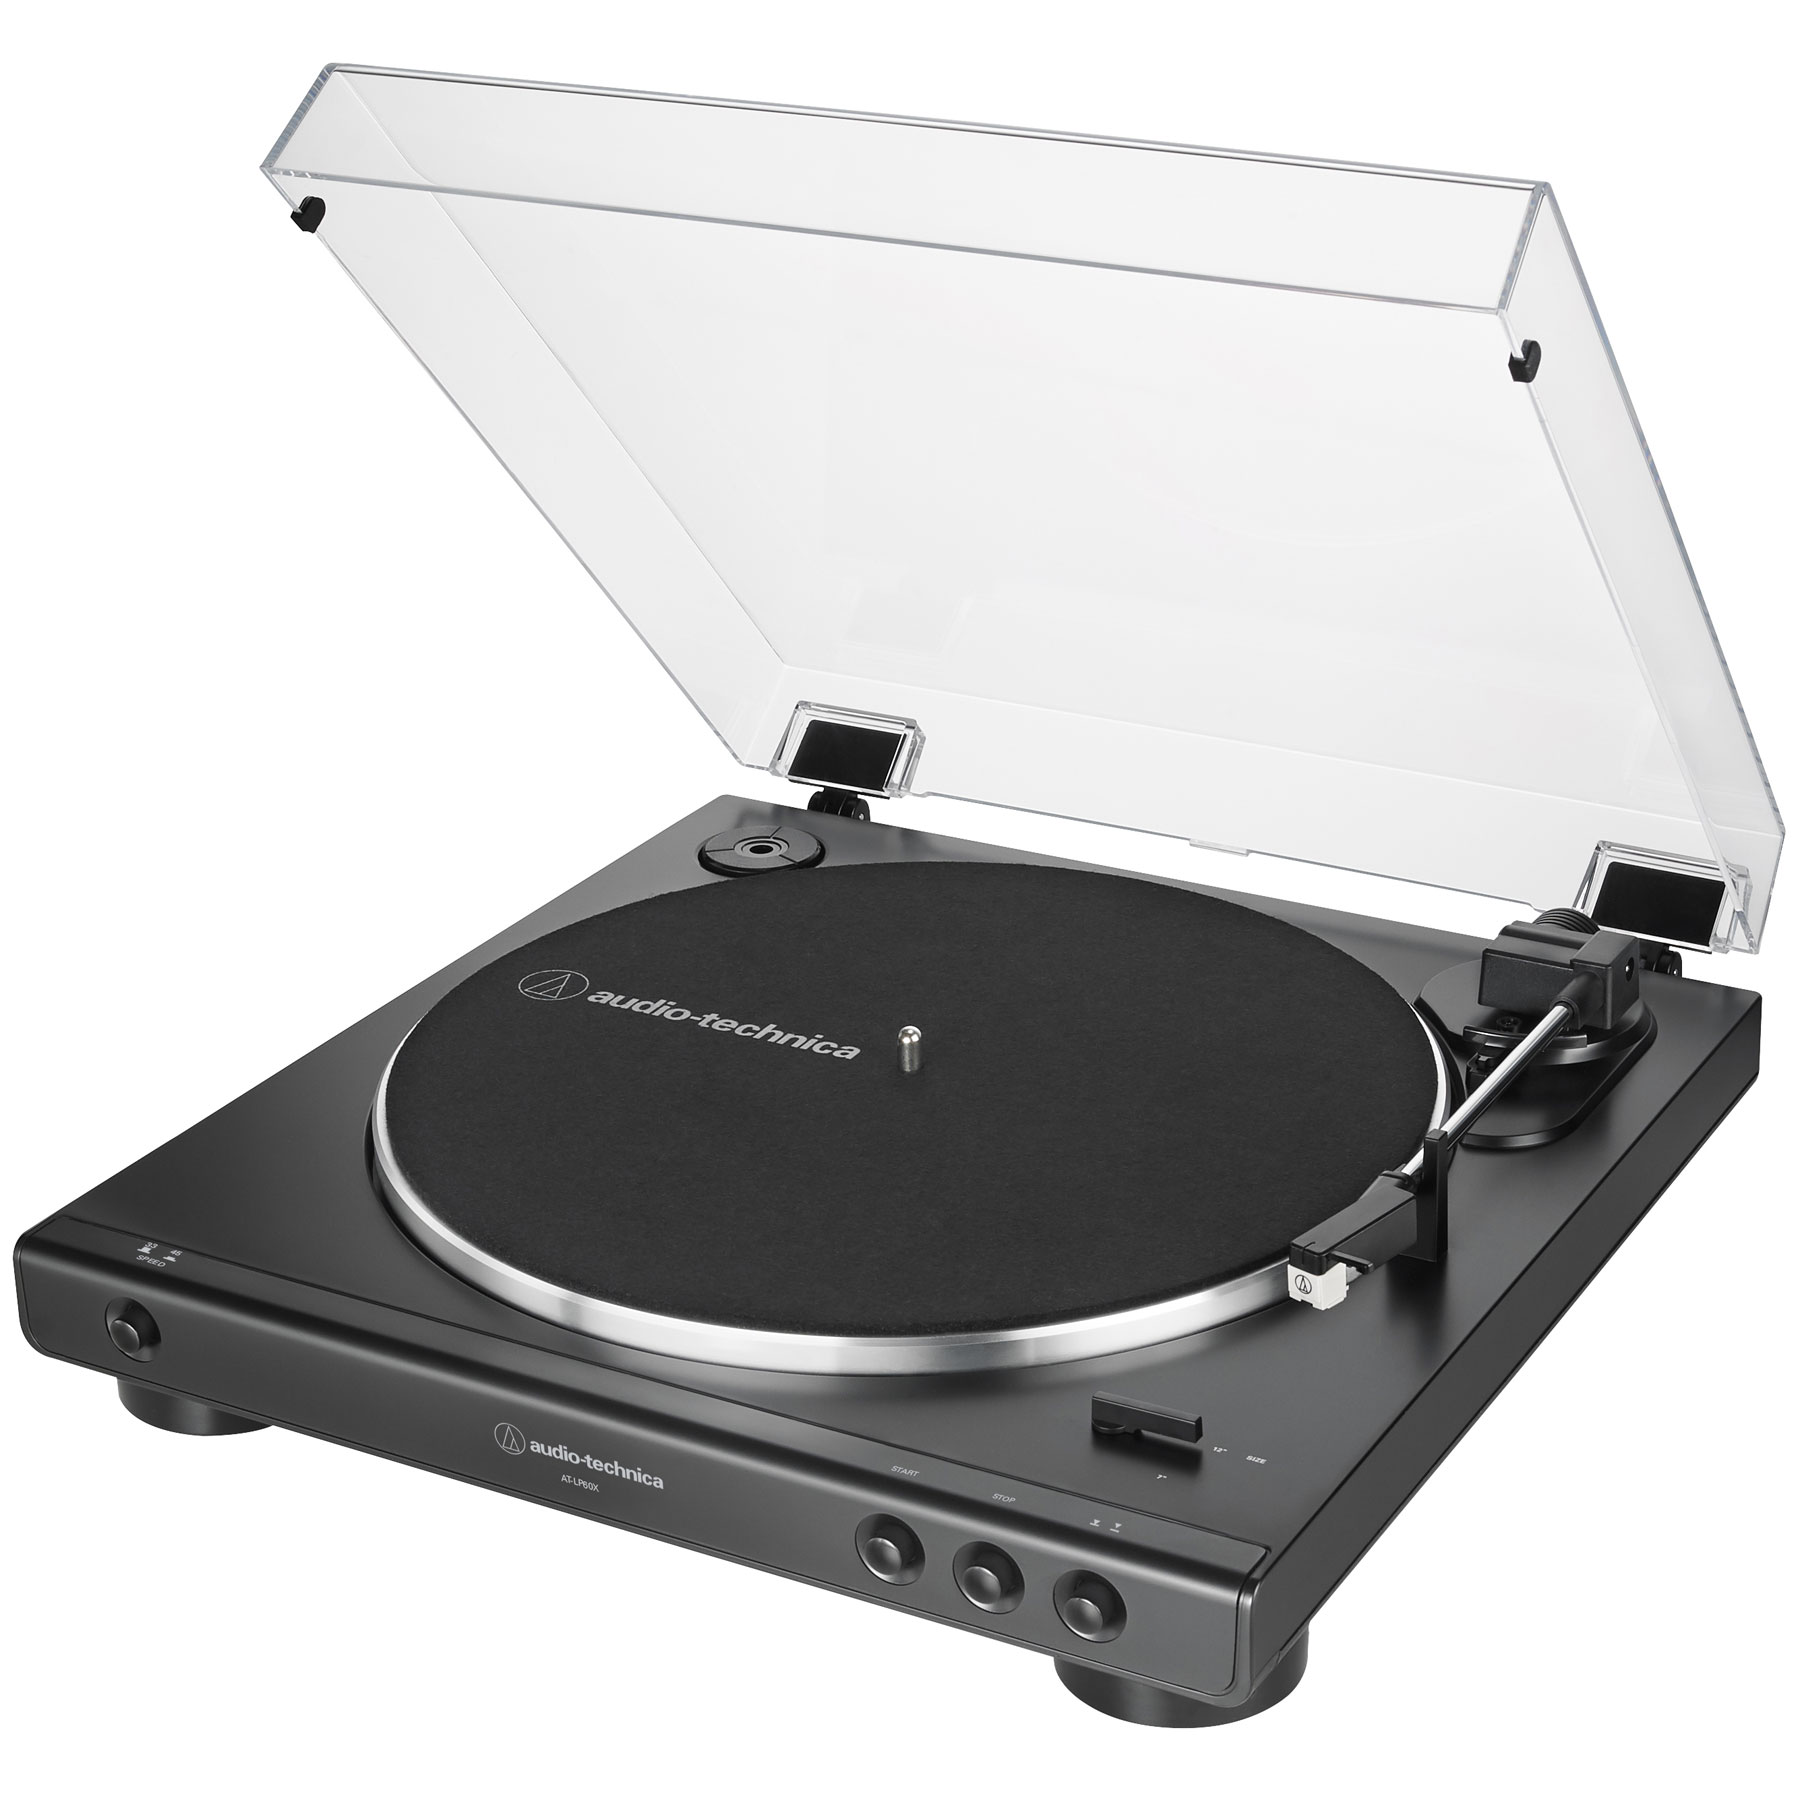 74db9098c8d Fully automatic belt-drive turntable operation with two speeds: 33-1/3, 45  RPM Anti-resonance, die-cast aluminum platter Integral Dual Magnet™ phono  ...